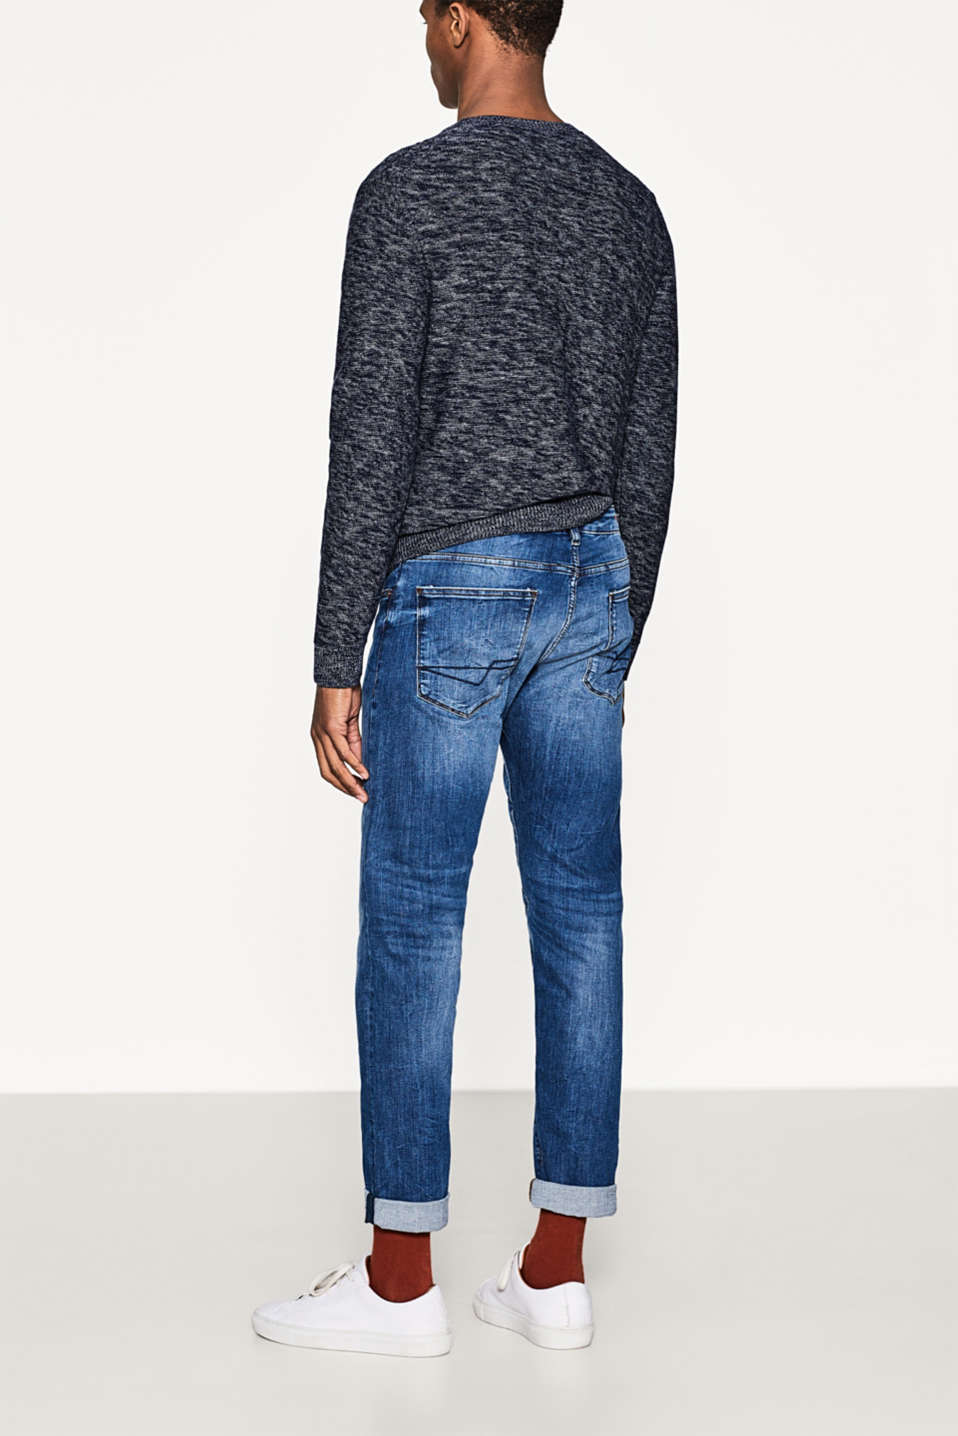 Dynamic denim with ultra stretchy comfort